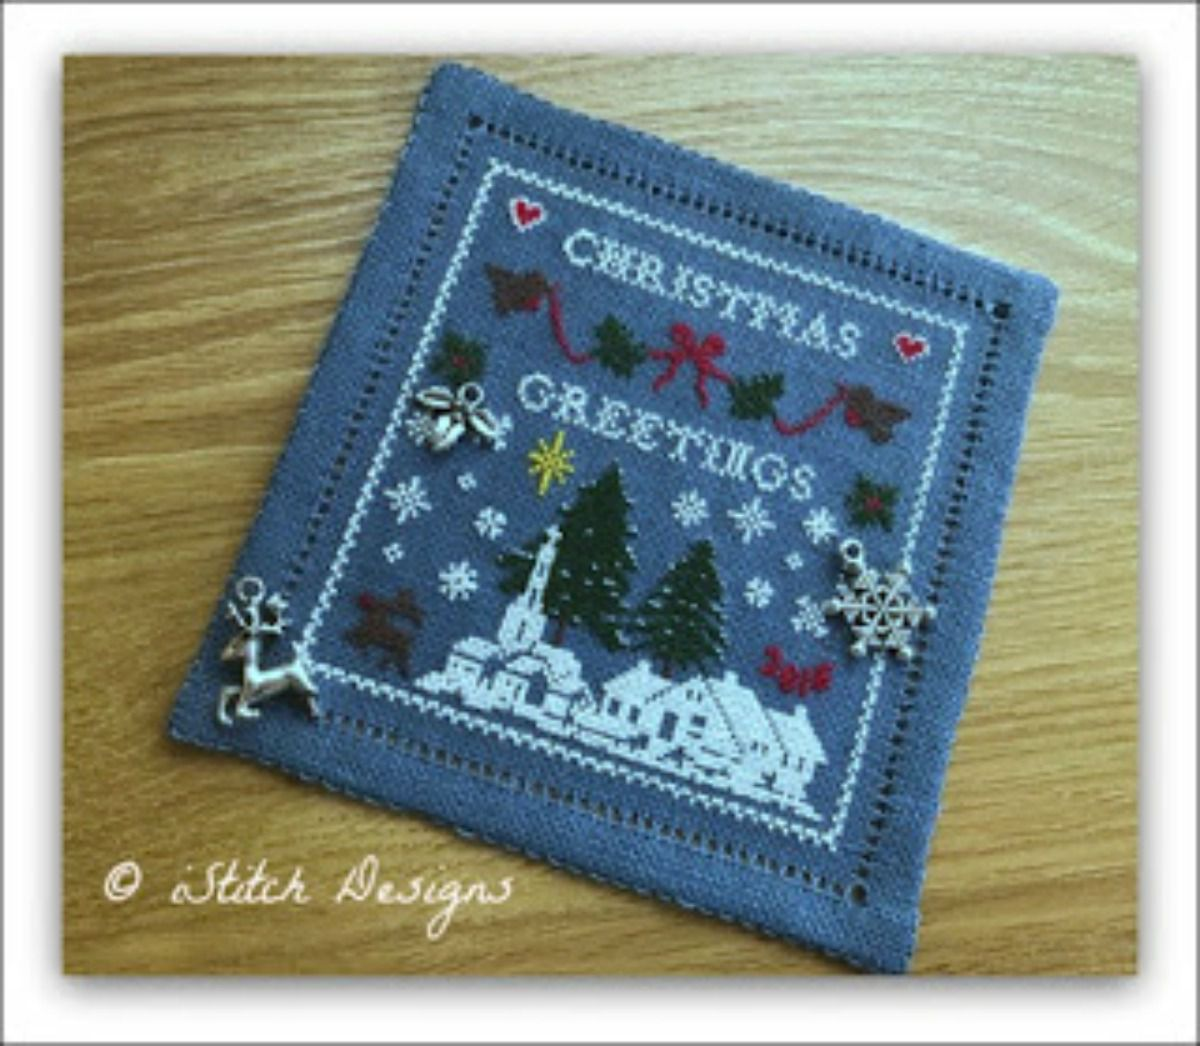 Completed blue cross-stitch design that reads Christmas Greetings.